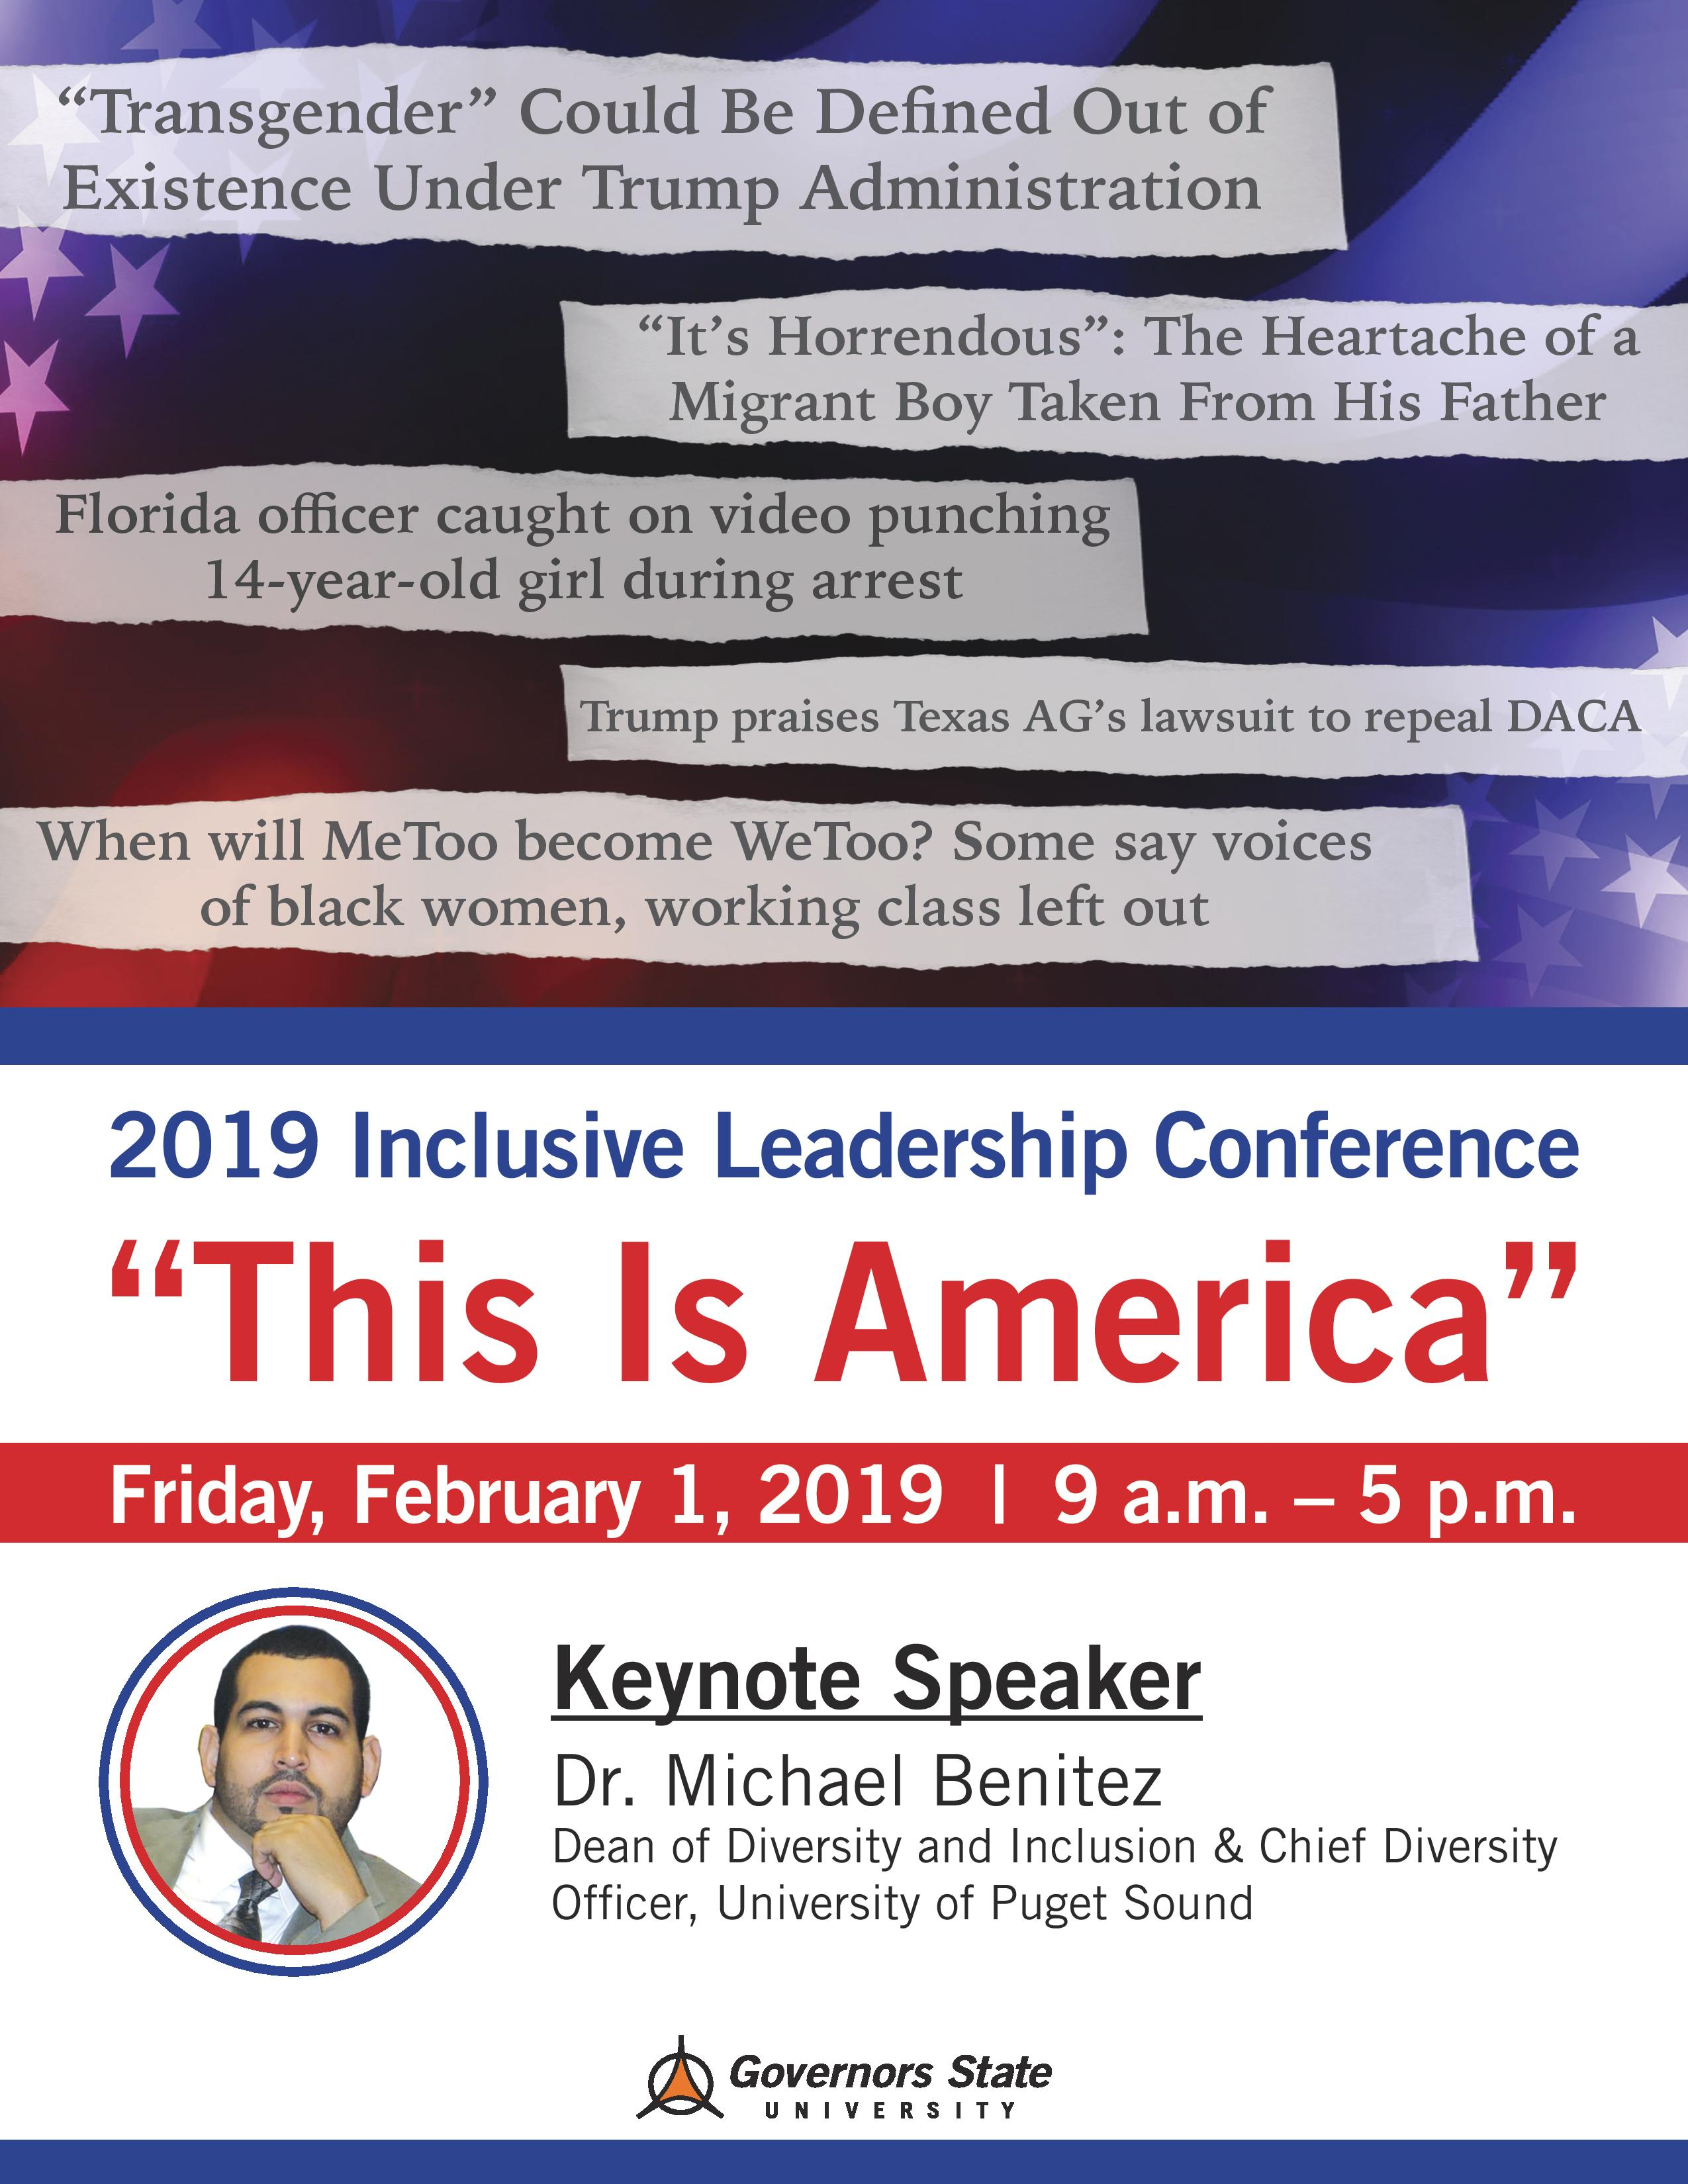 2019 INCLUSIVE LEADERSHIP CONFERENCE